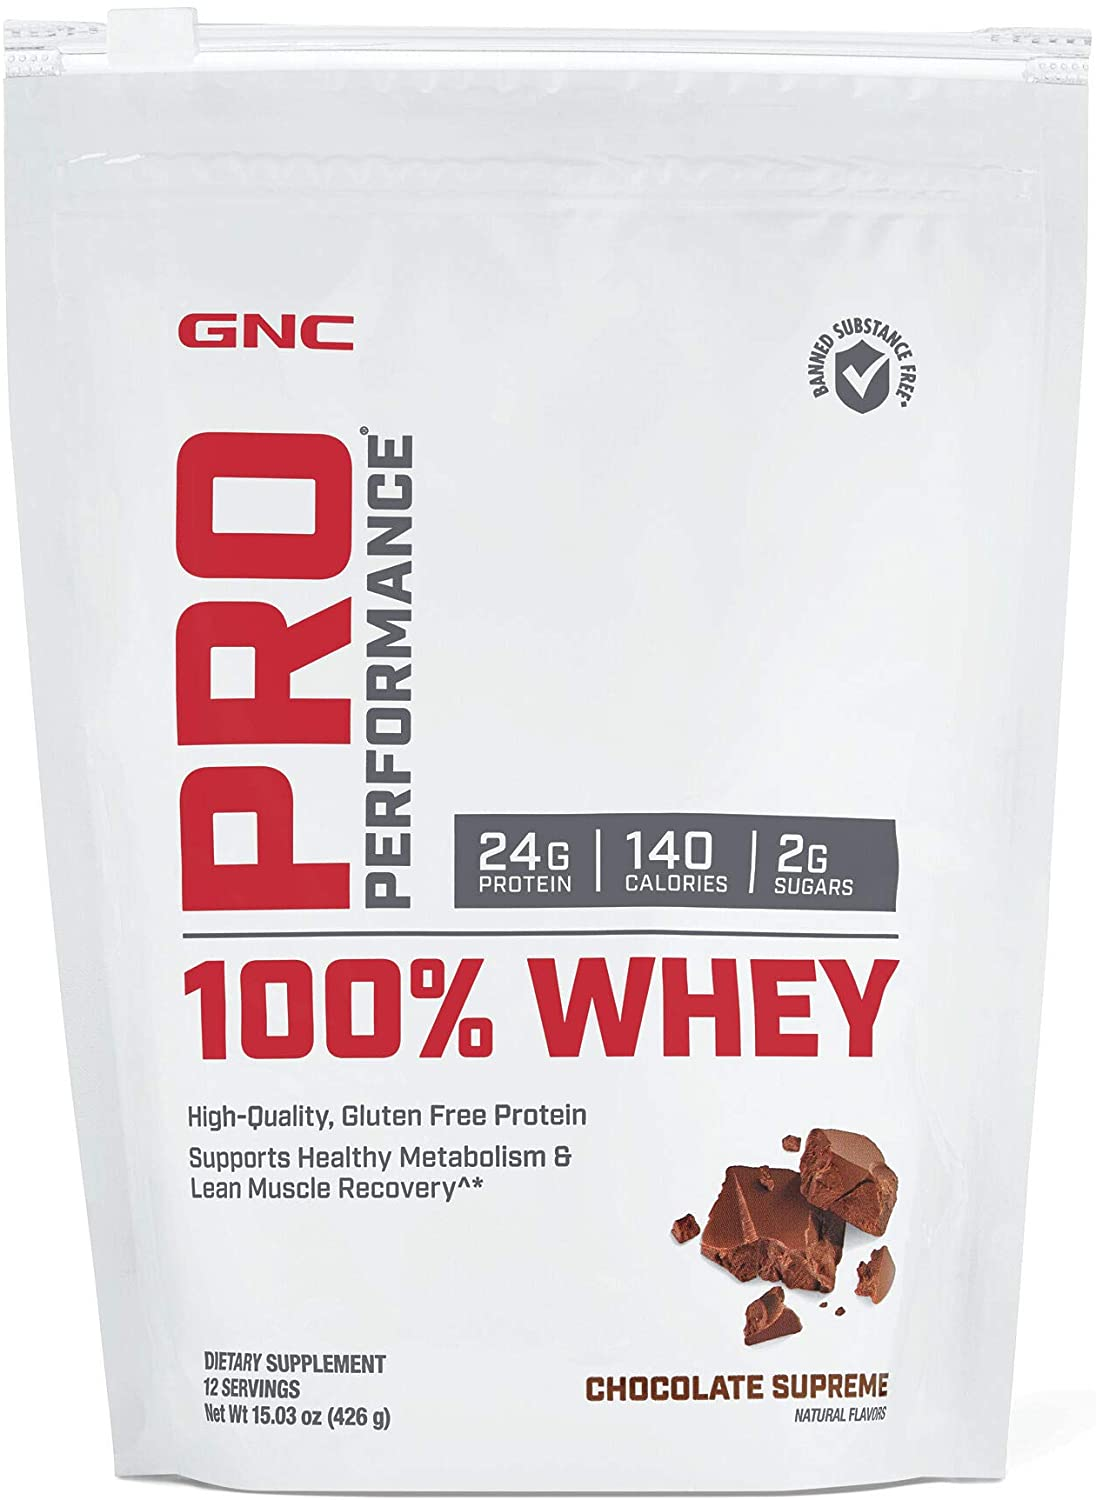 GNC Pro Performance 100% Whey Protein Powder - Chocolate Supreme, 12 Servings, Supports Healthy Metabolism and Lean Muscle Recovery